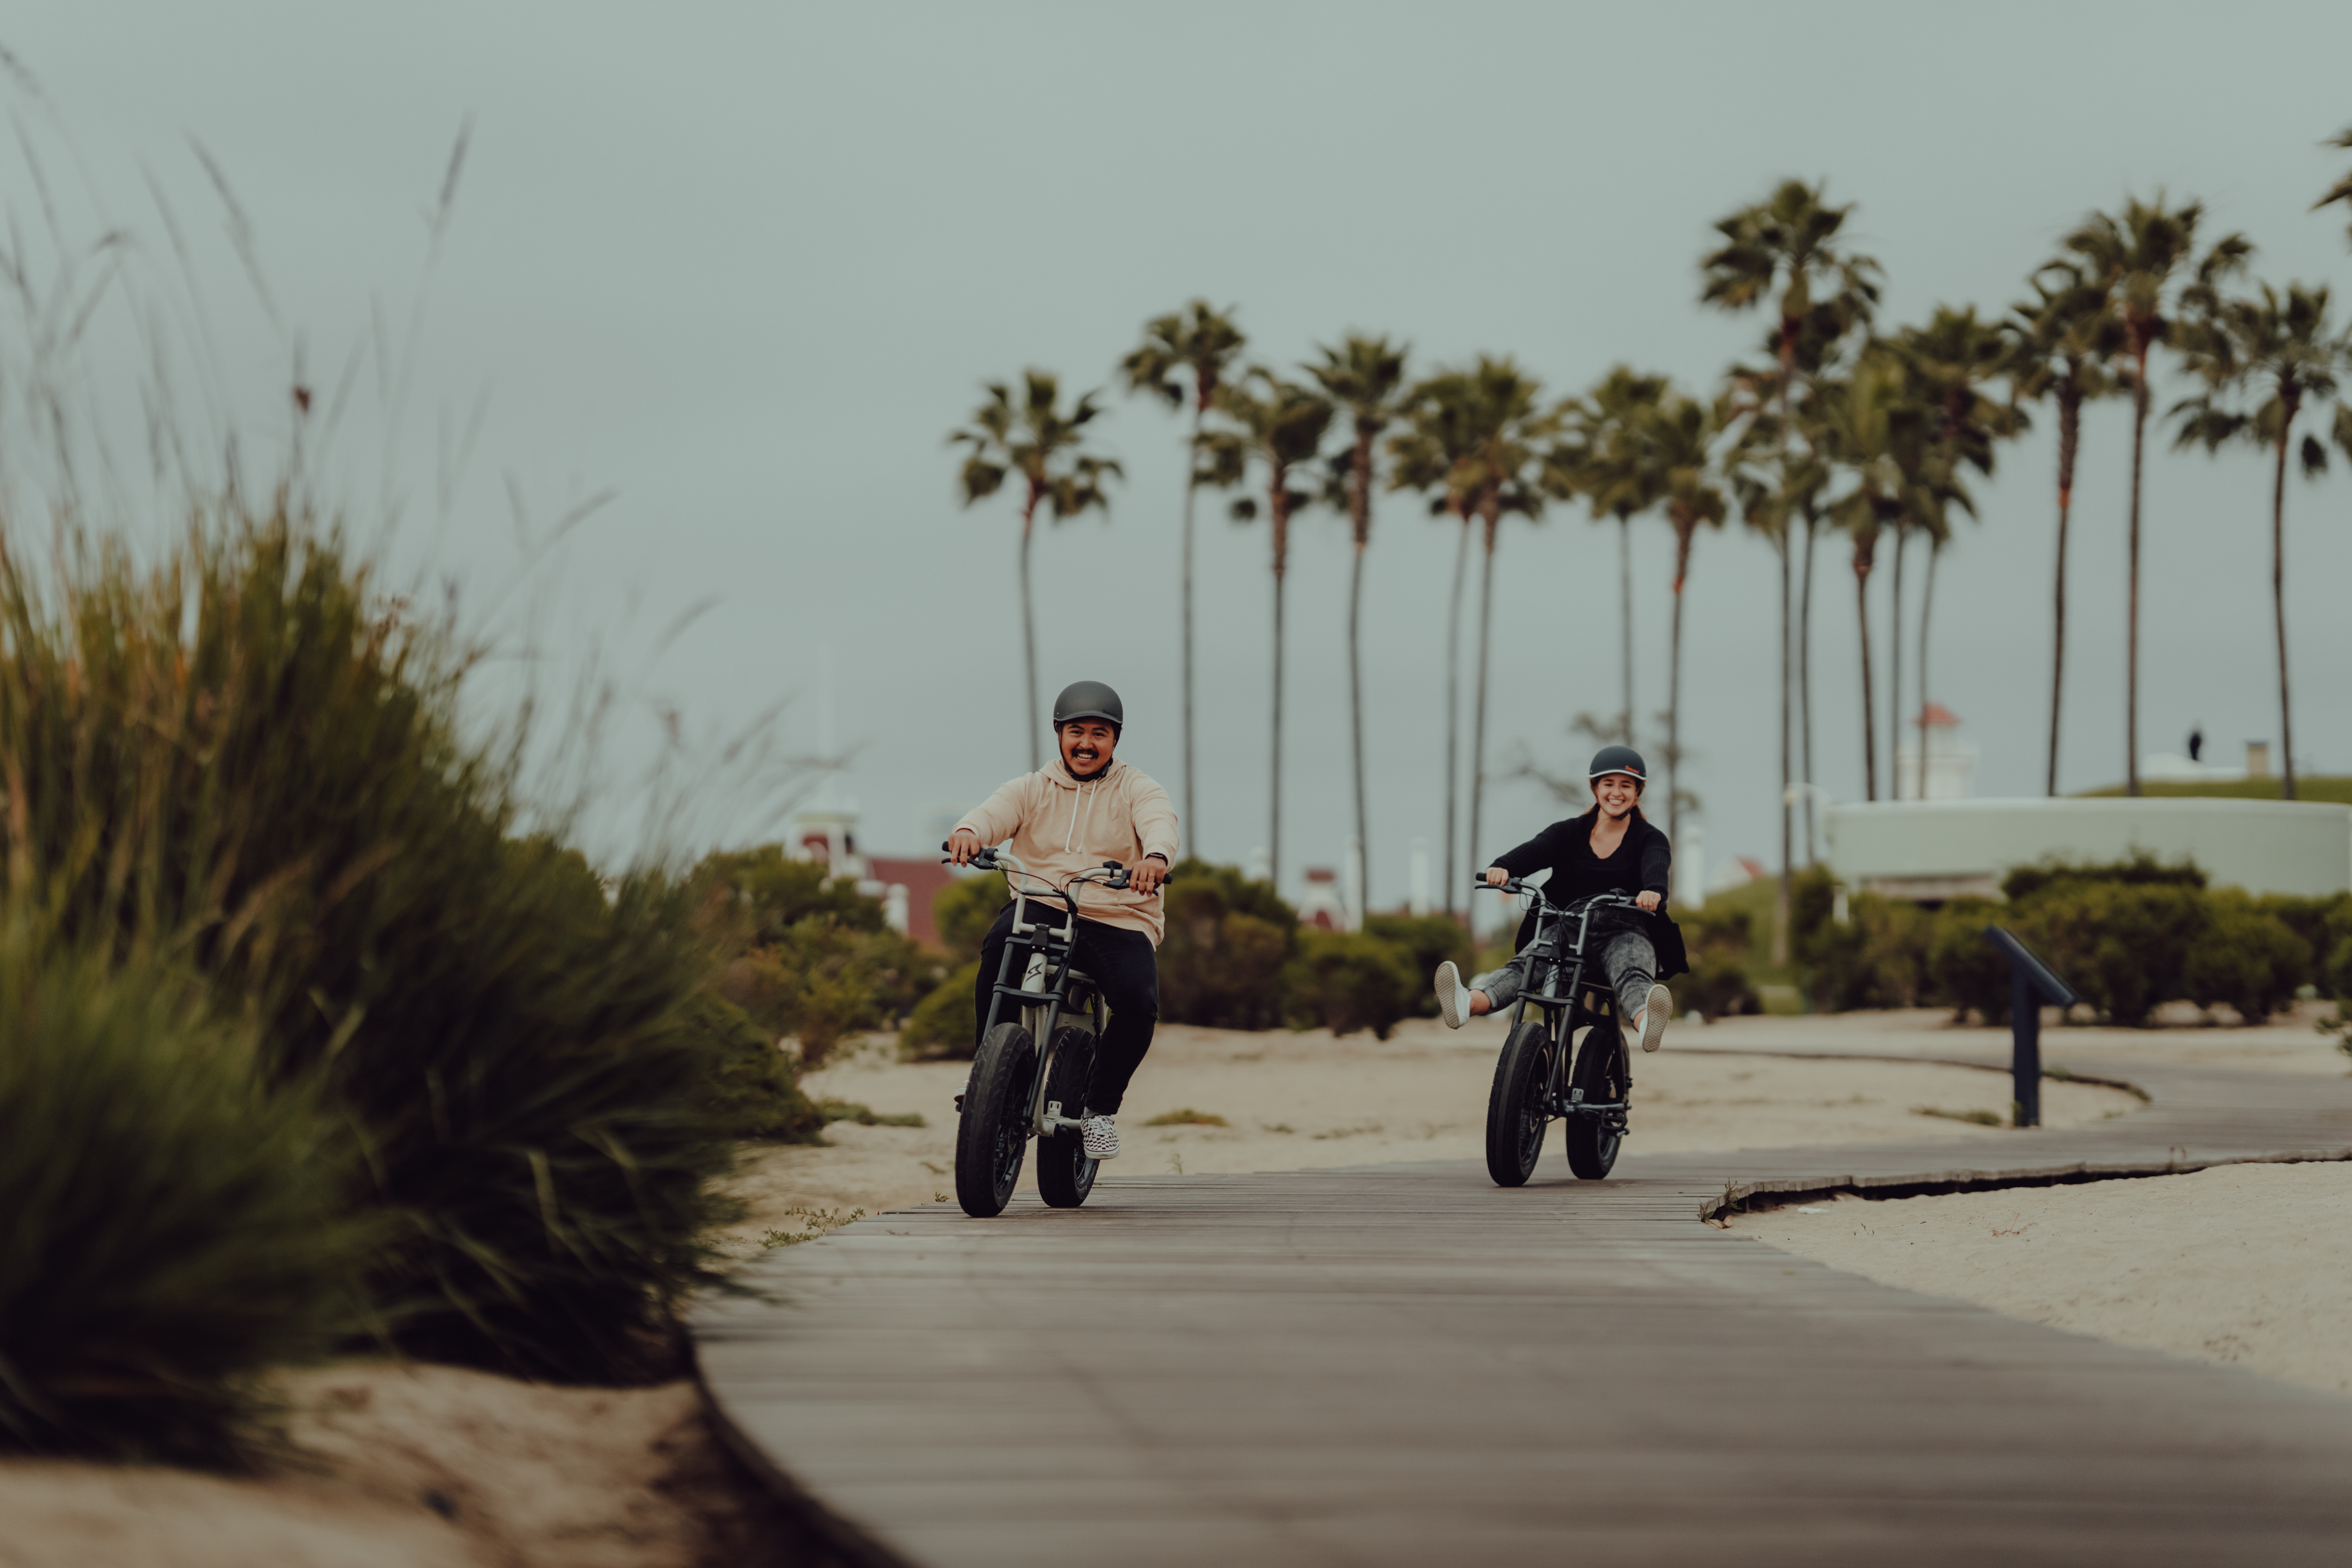 SUPER73-ZX electric motorbike priced at $1995 has four riding modes selected through a smartphone app